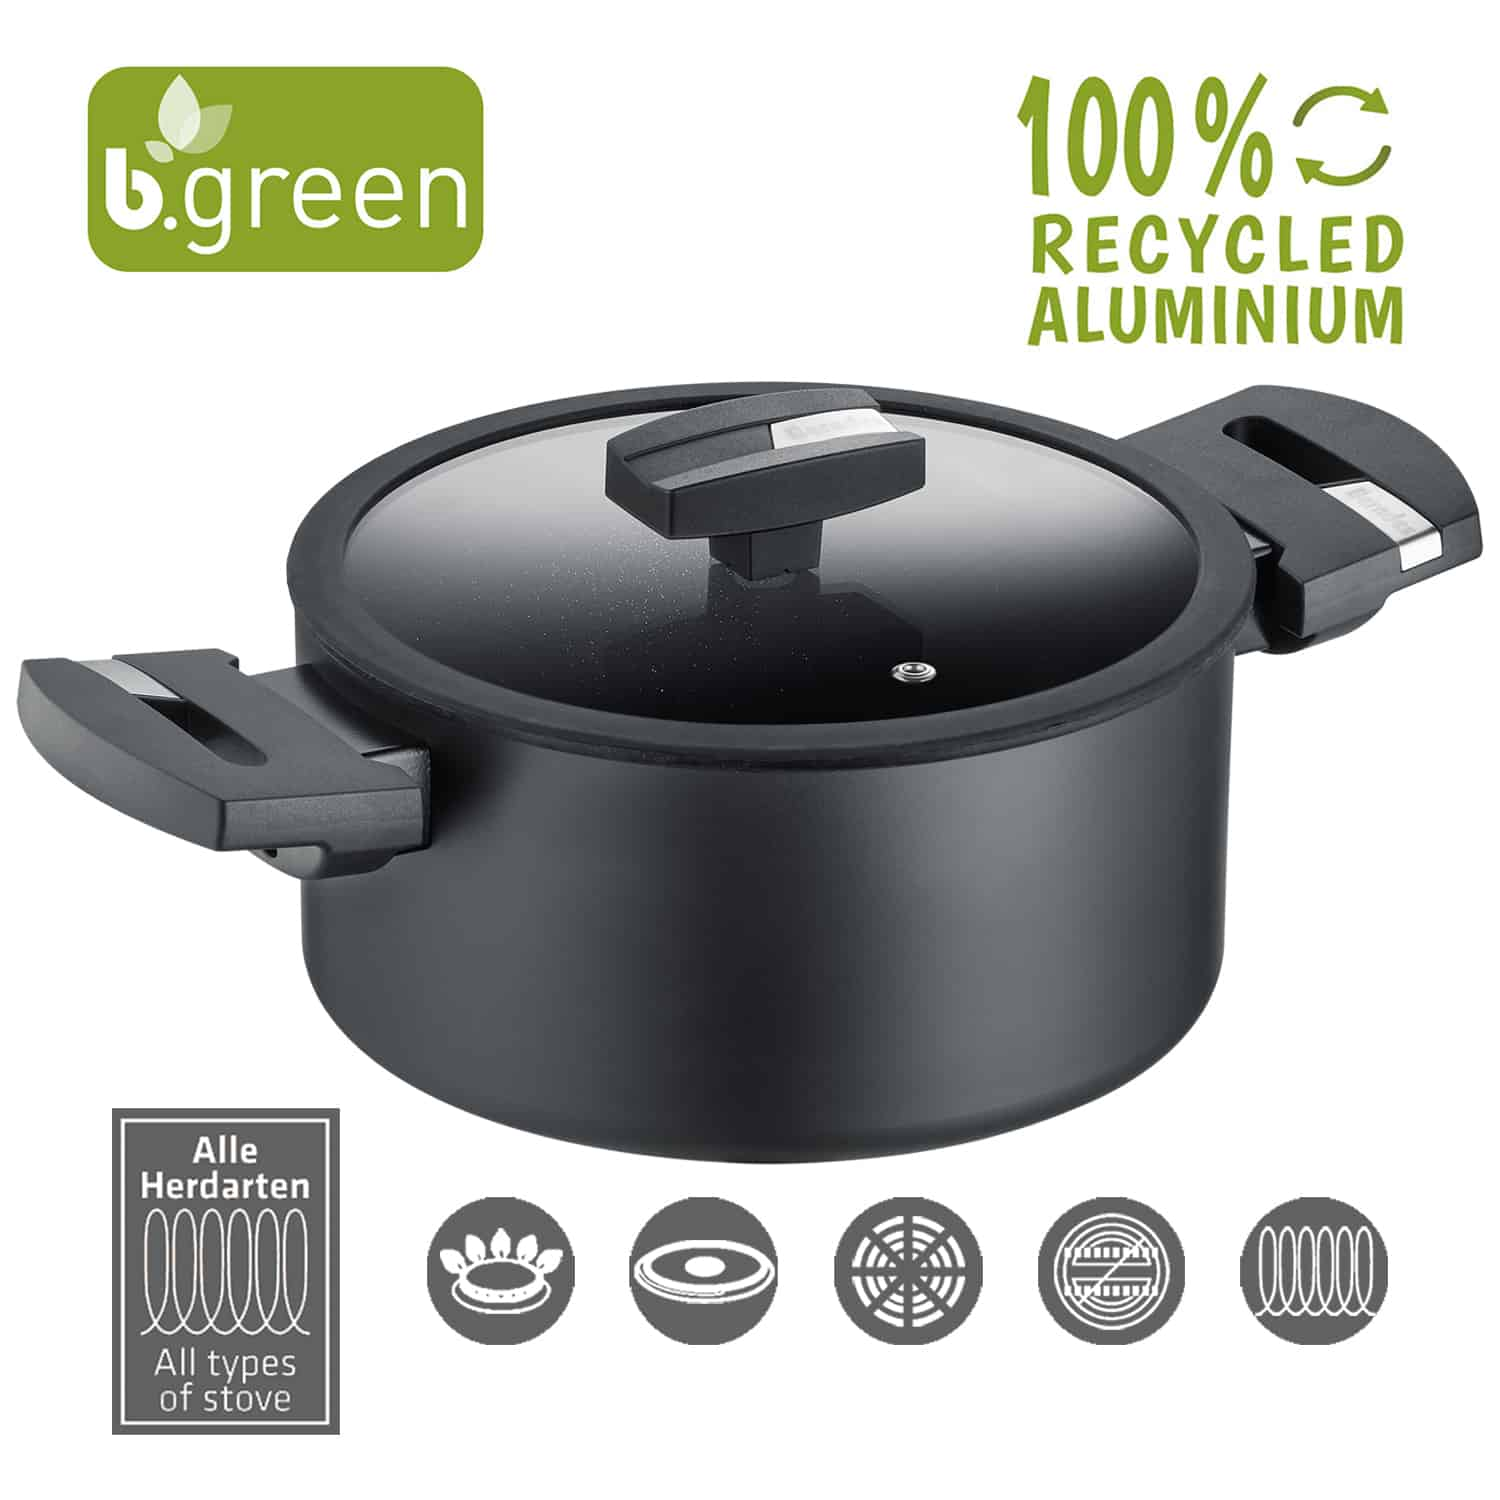 Berndes Kochtopf mit Glasdeckel b.green Alu Recycled Induction schwarz 20 cm